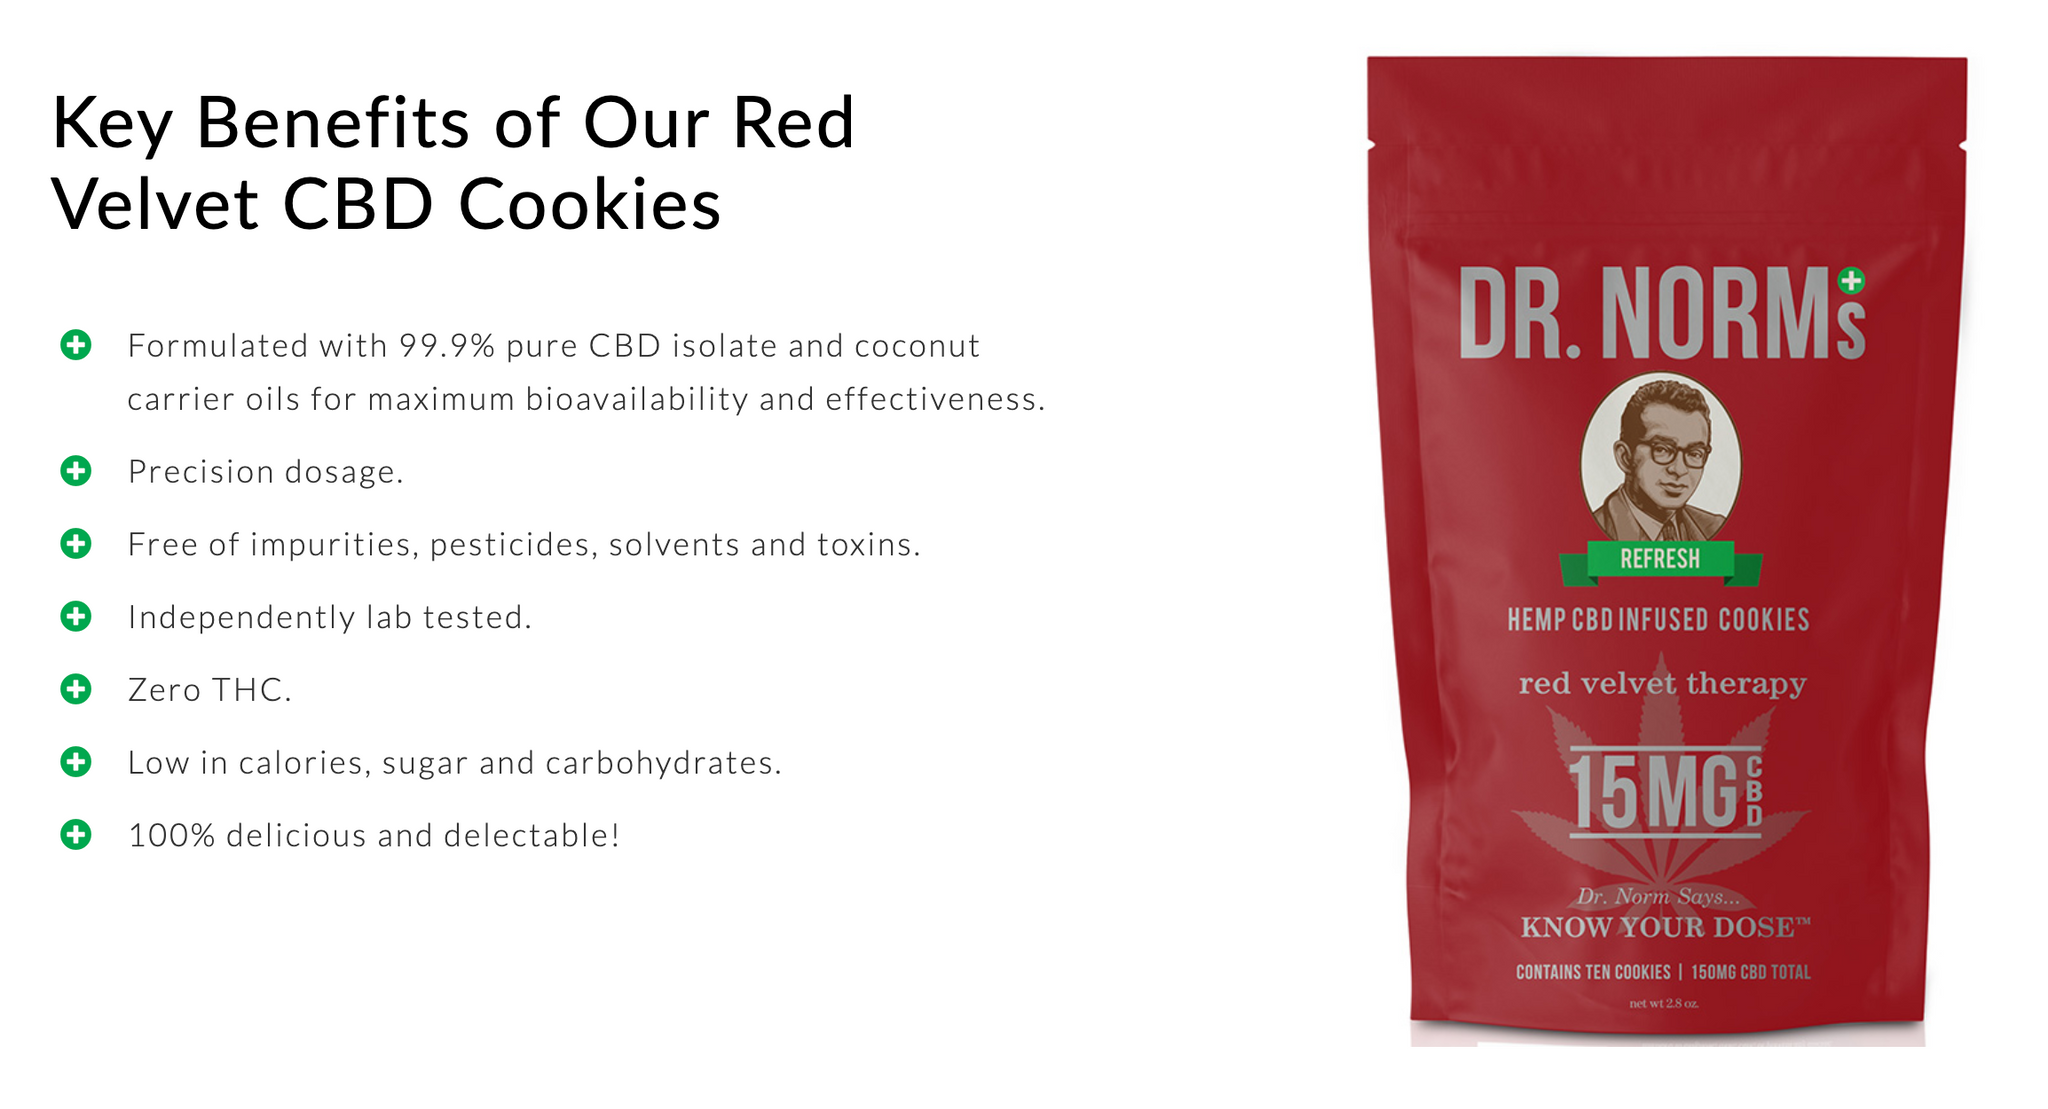 Dr. Norms Red Velvet CBD Cookies